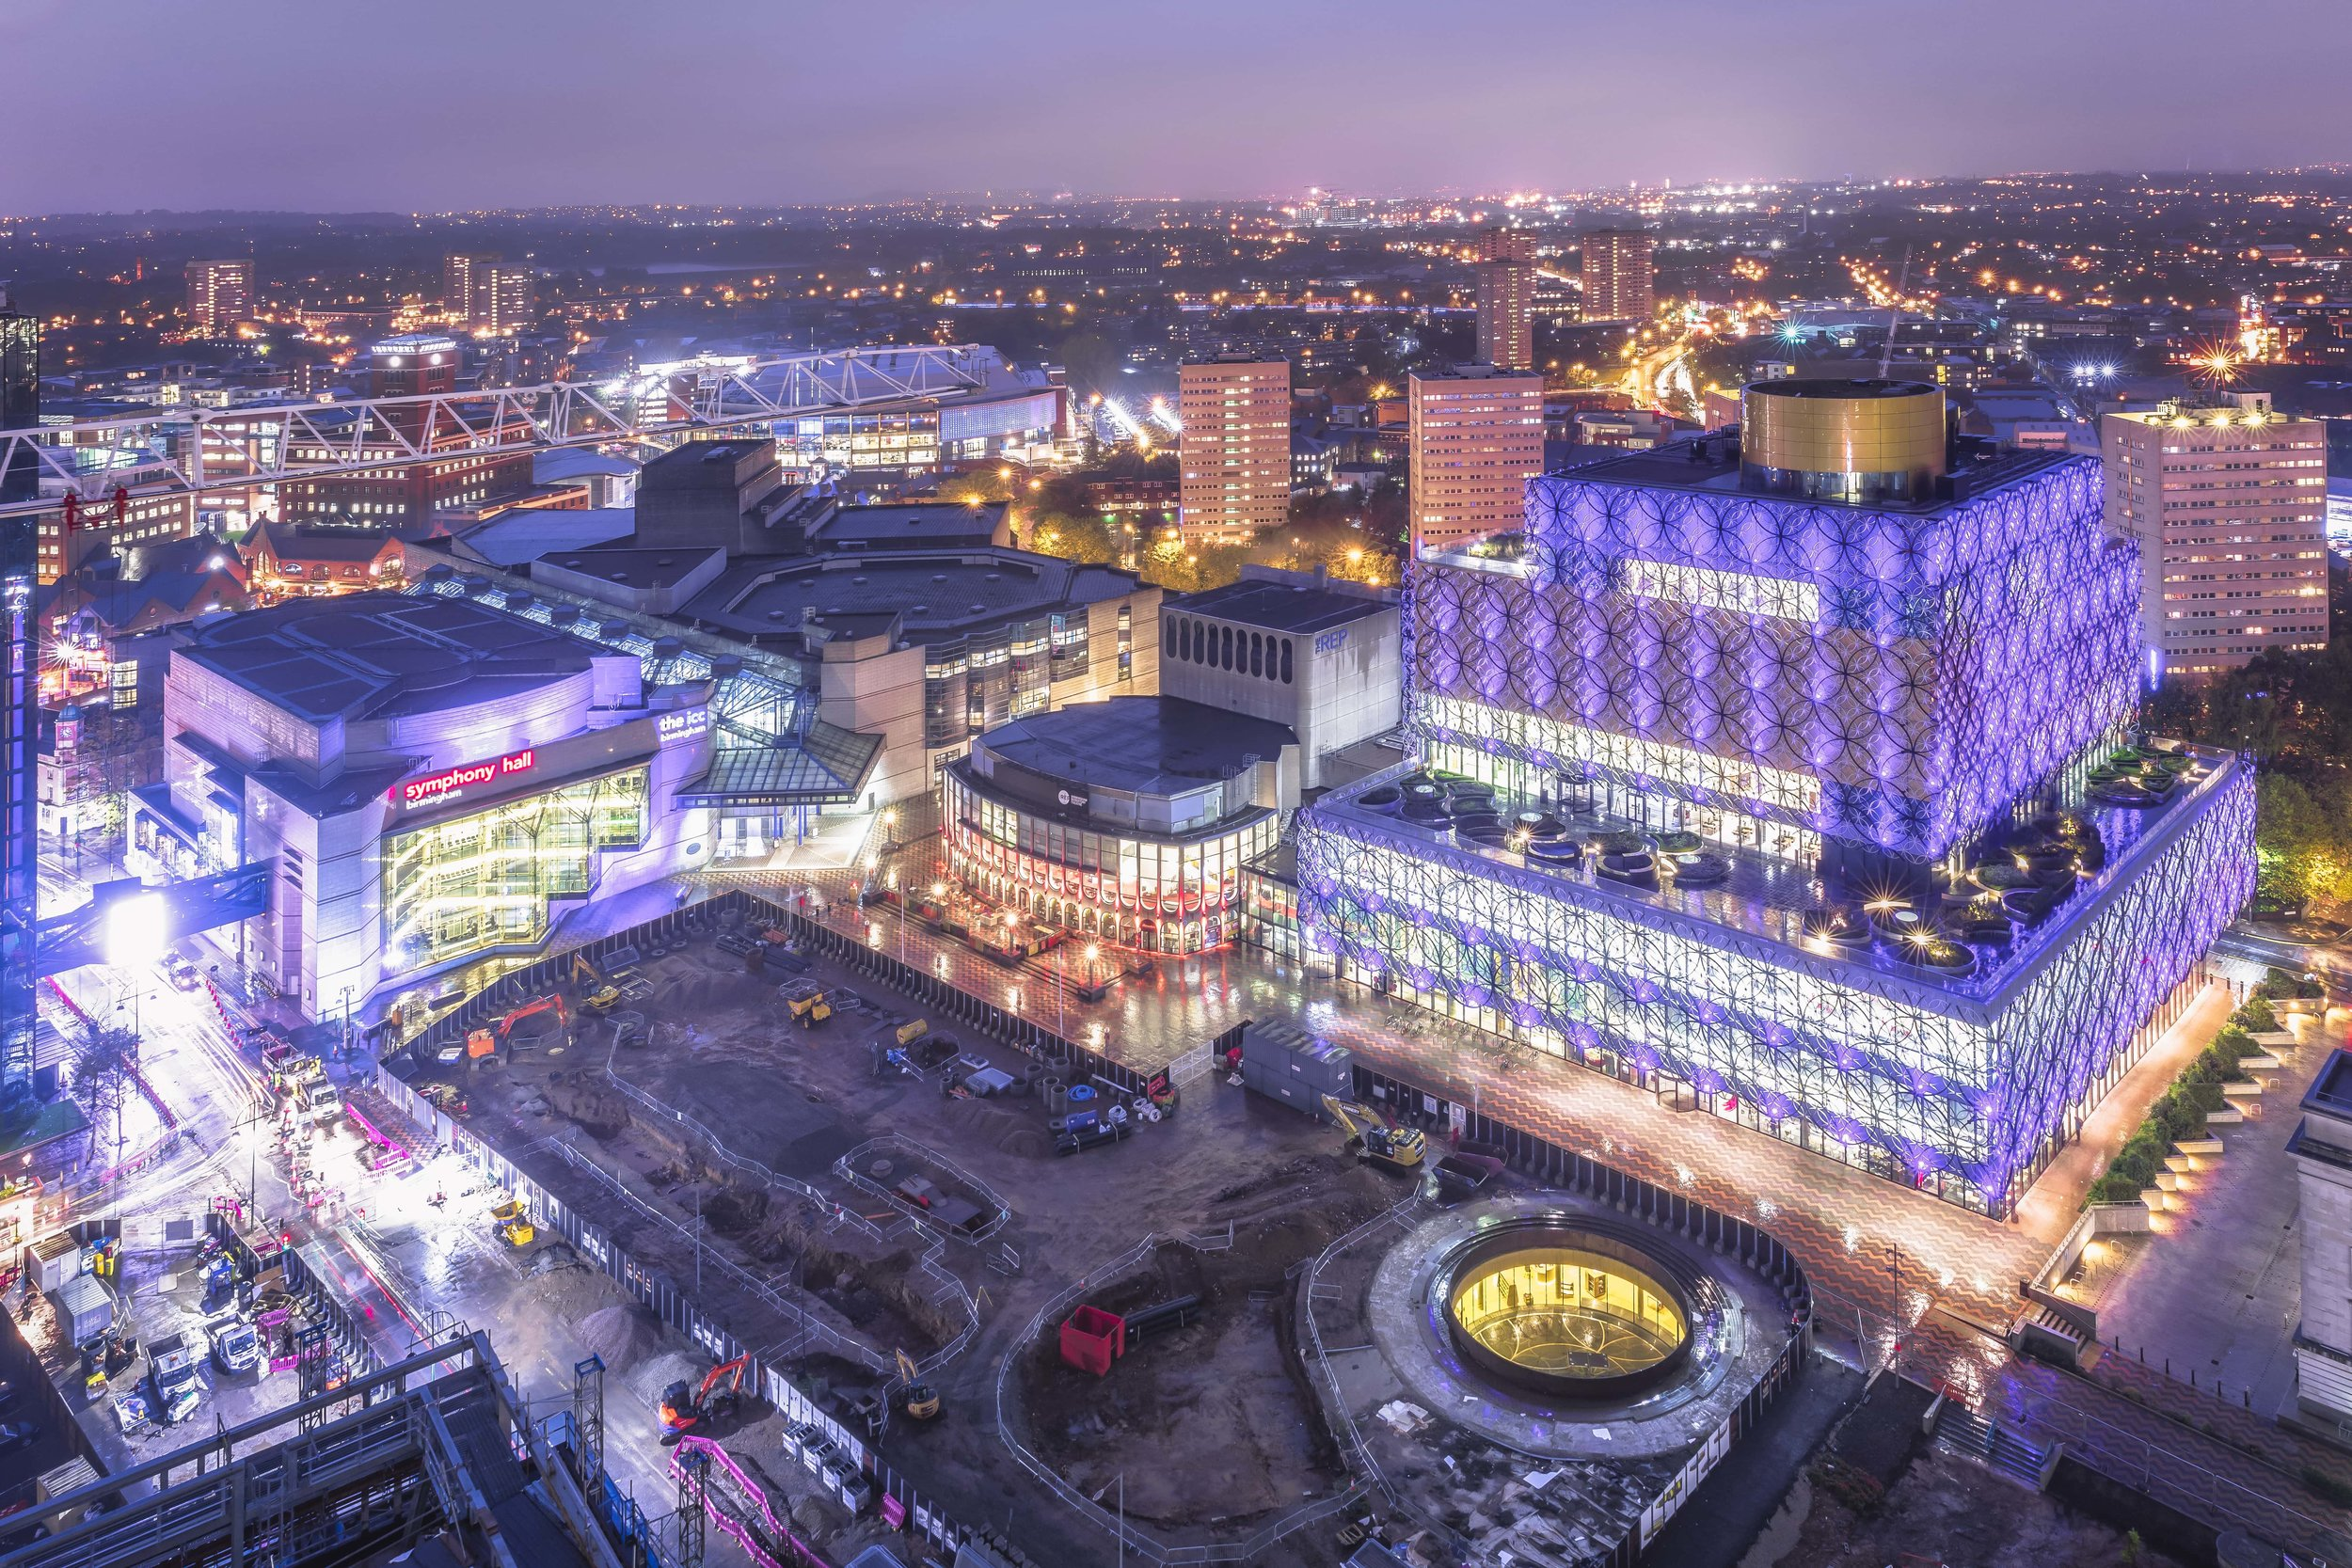 The Library of Birmingham and the redevelopment of Centenary Square